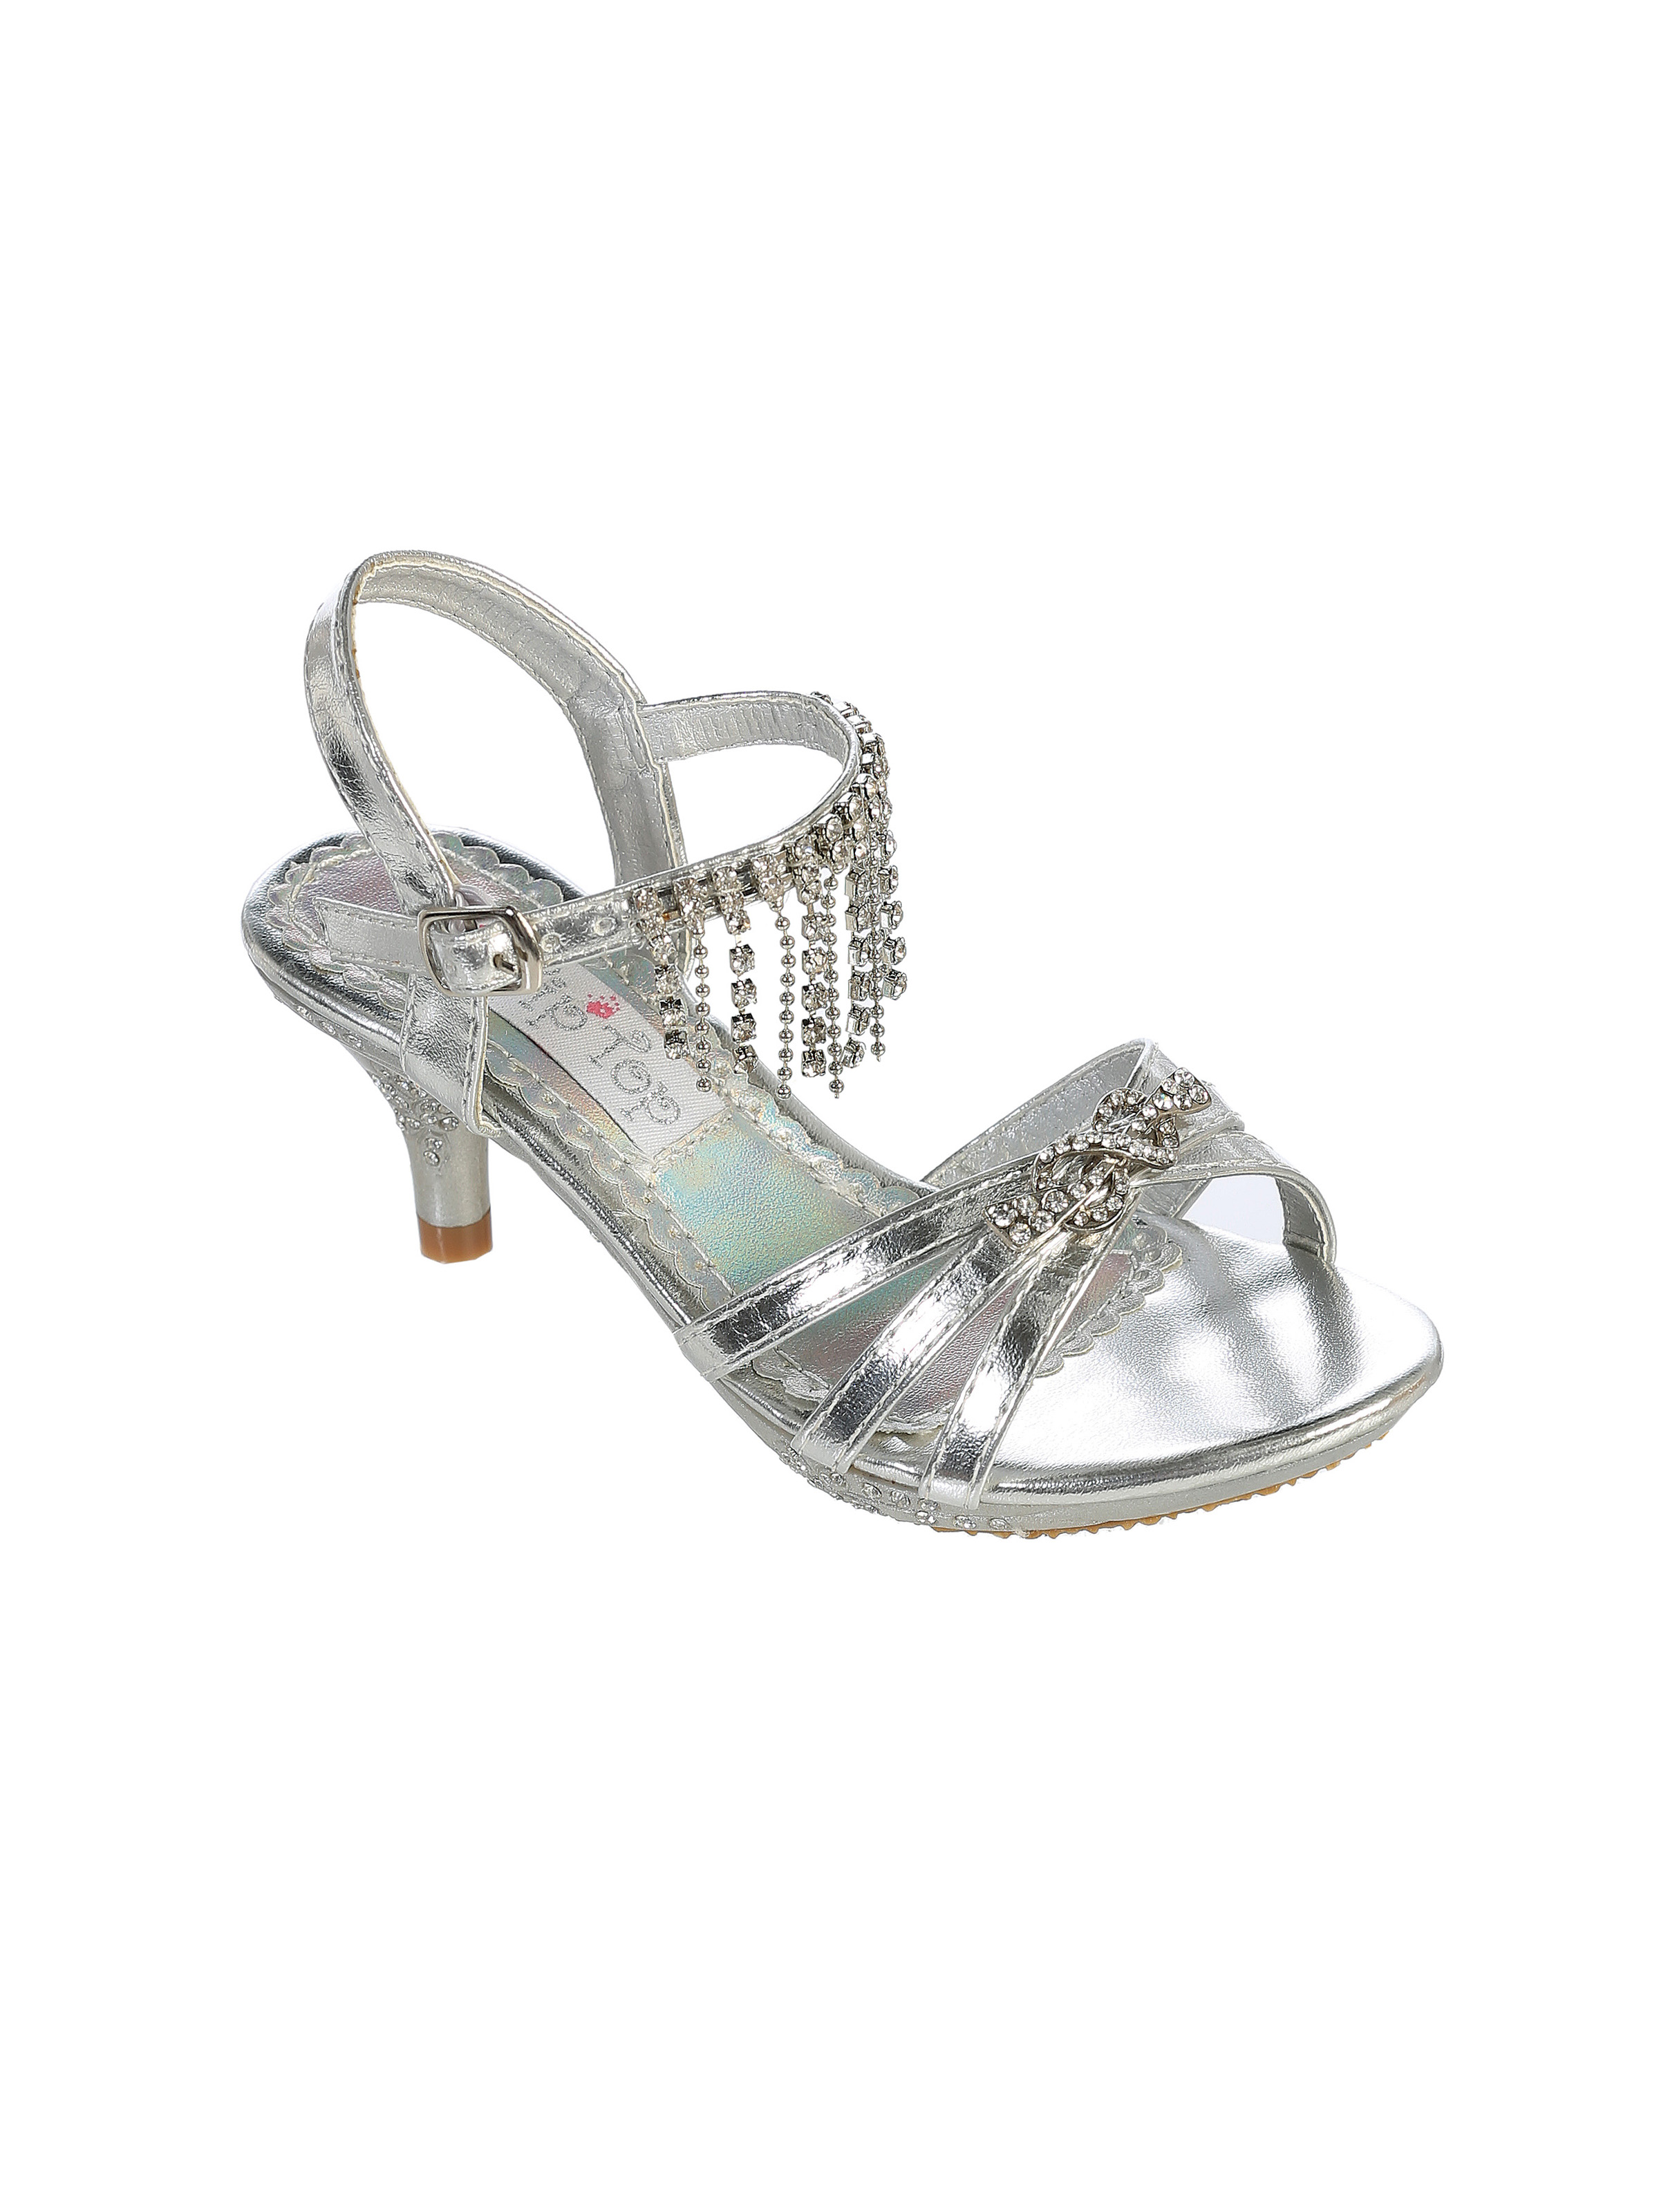 c7a8729ef77e Girls Shoe Style S75 - Strappy Shoe with Rhinestone Detail In Choice of  Color